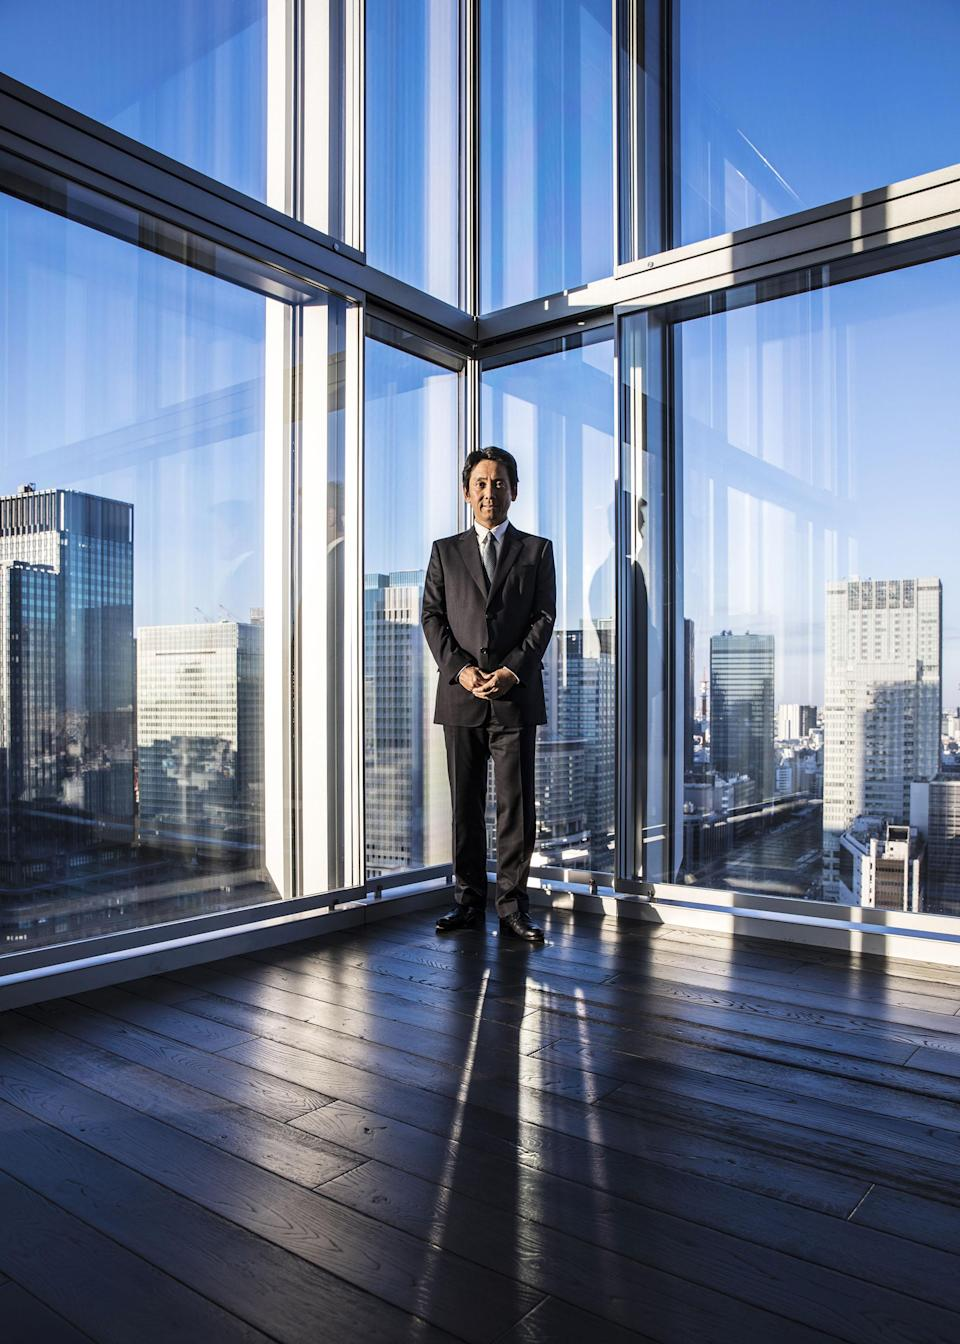 This Company Is Japan's Top Contender for Global Internet Domination